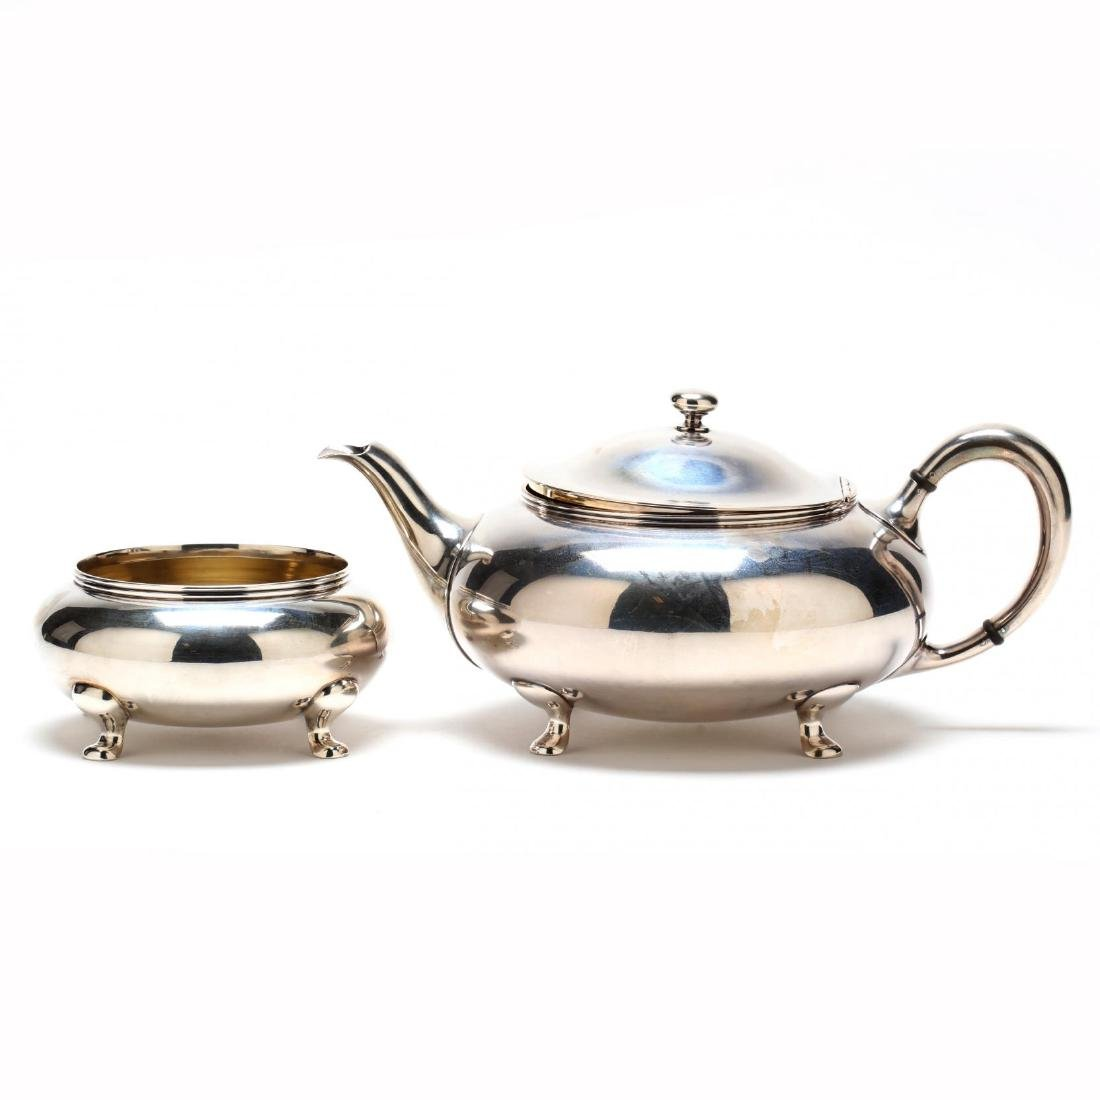 Towle Sterling Silver Tea & Coffee Service - 7